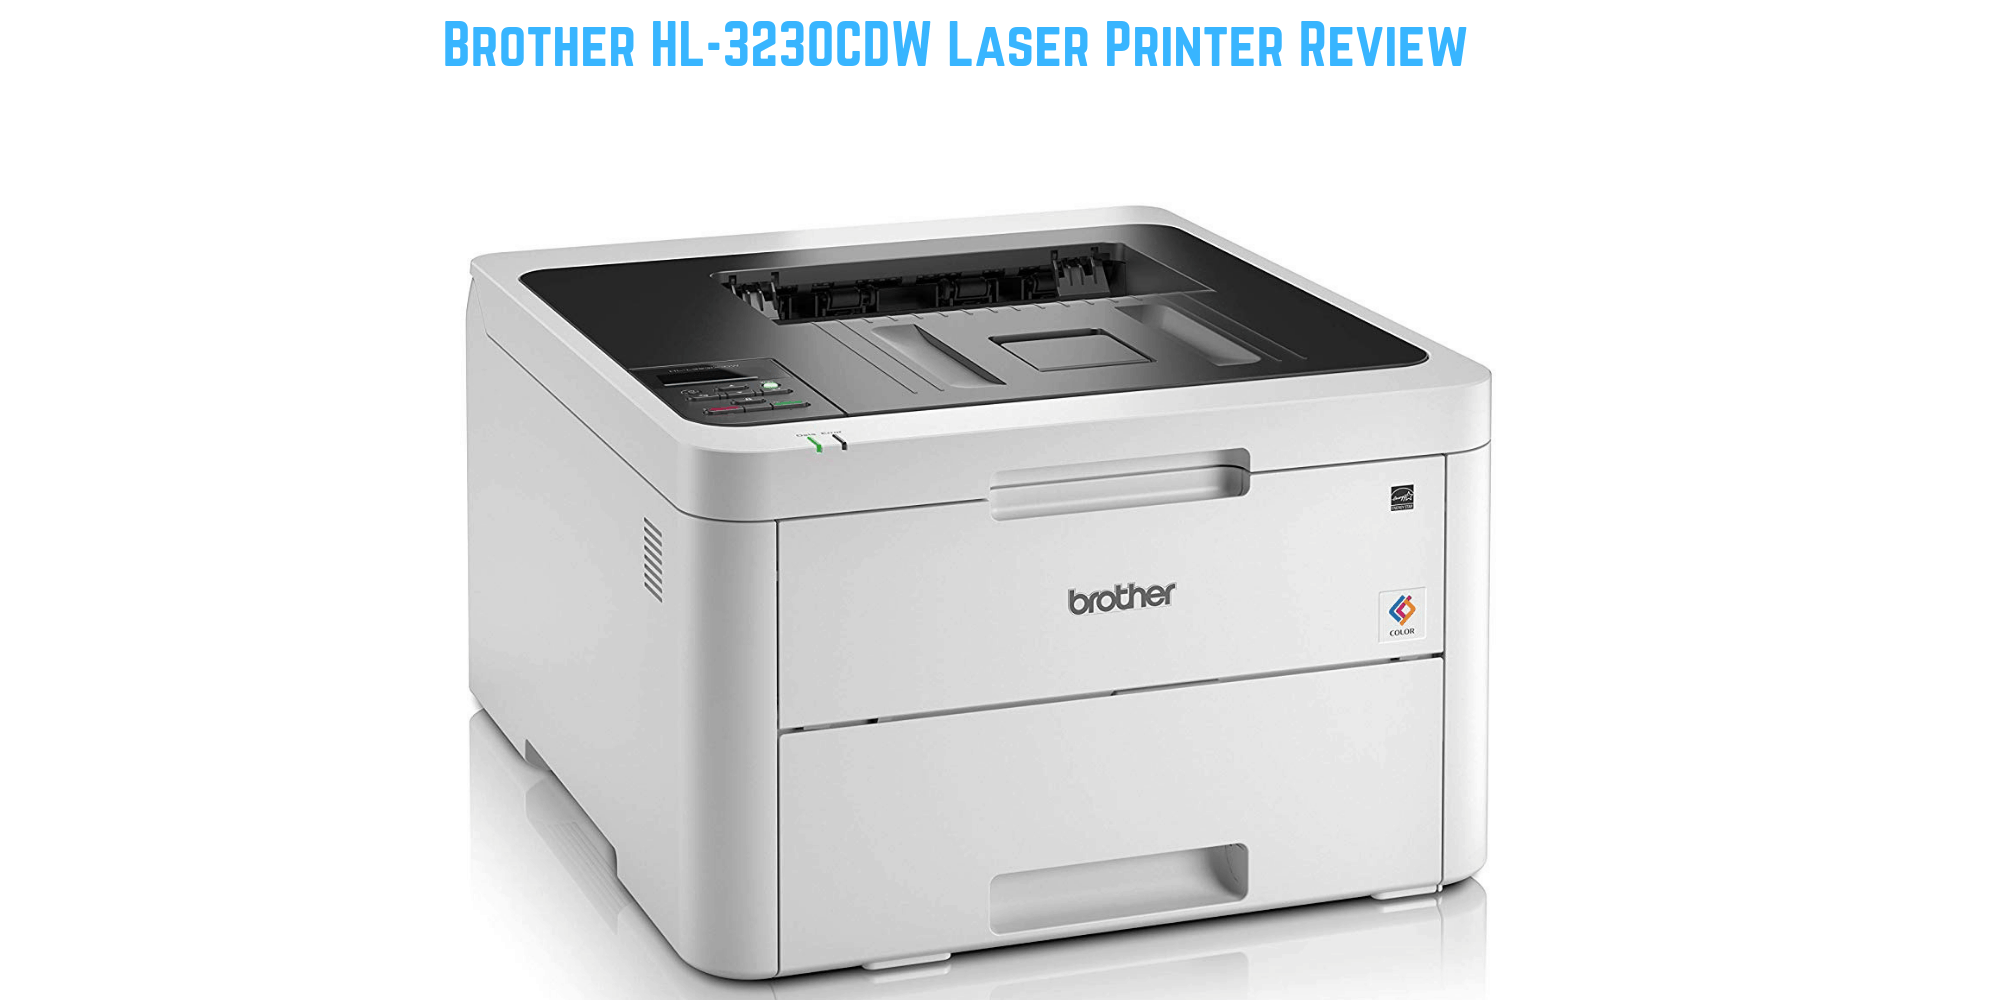 Brother Hl 3230cdw Laser Printer Review An Affordable Colour Laser Perfect For A Small Or Home Office Mighty Gadget Blog Uk Technology News And Reviews